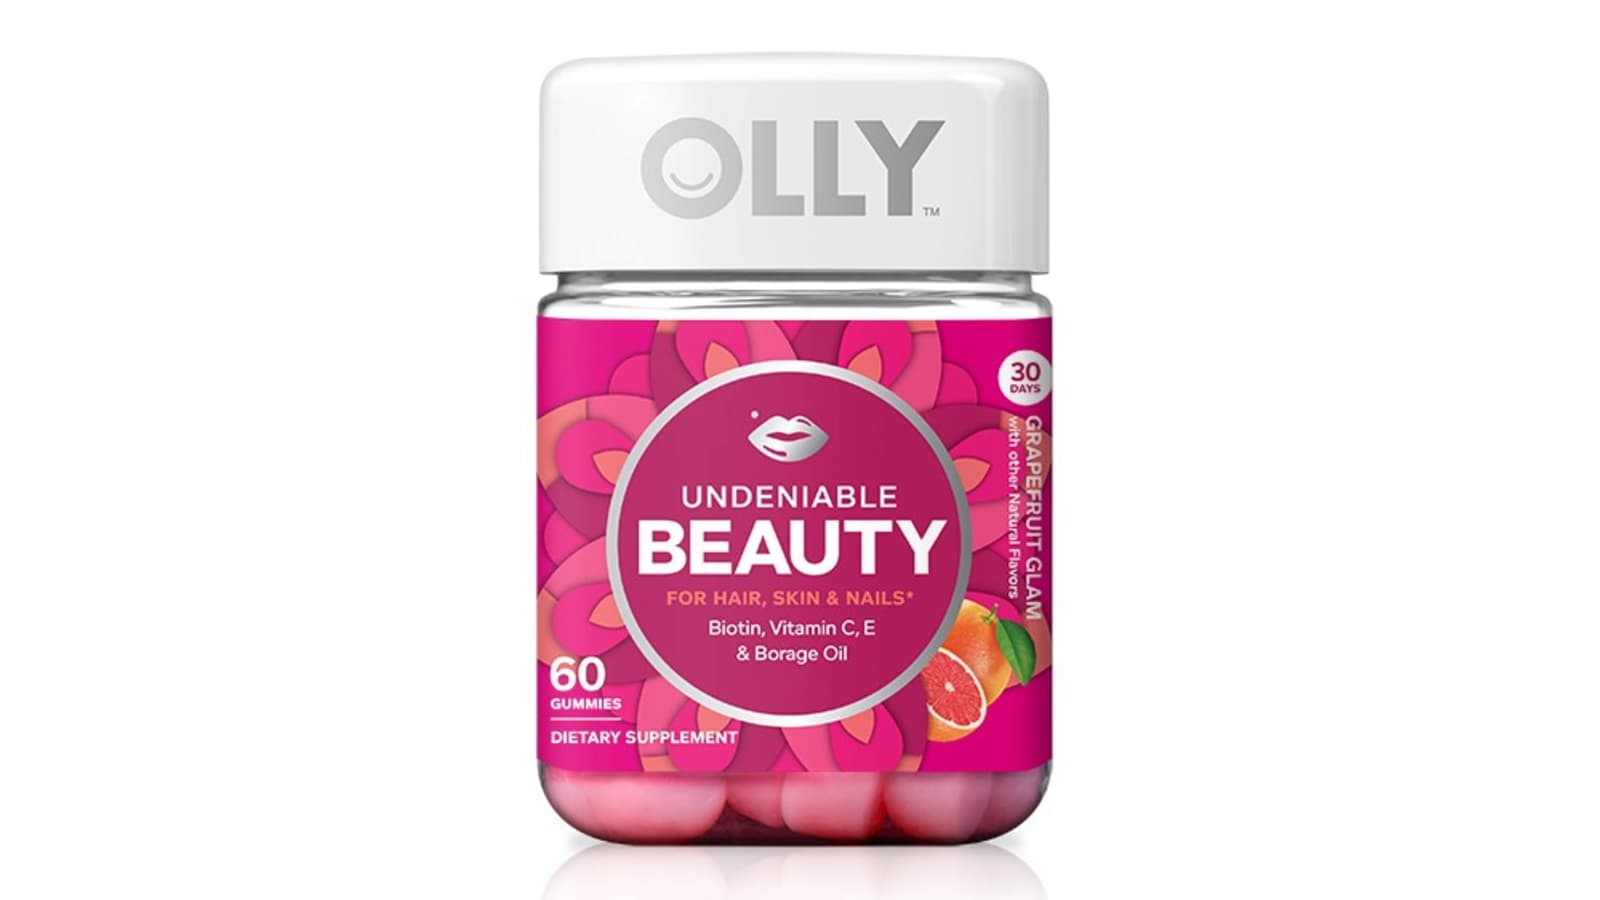 Eric Ryan S Newest Company Olly Is Reinventing The Vitamin Market